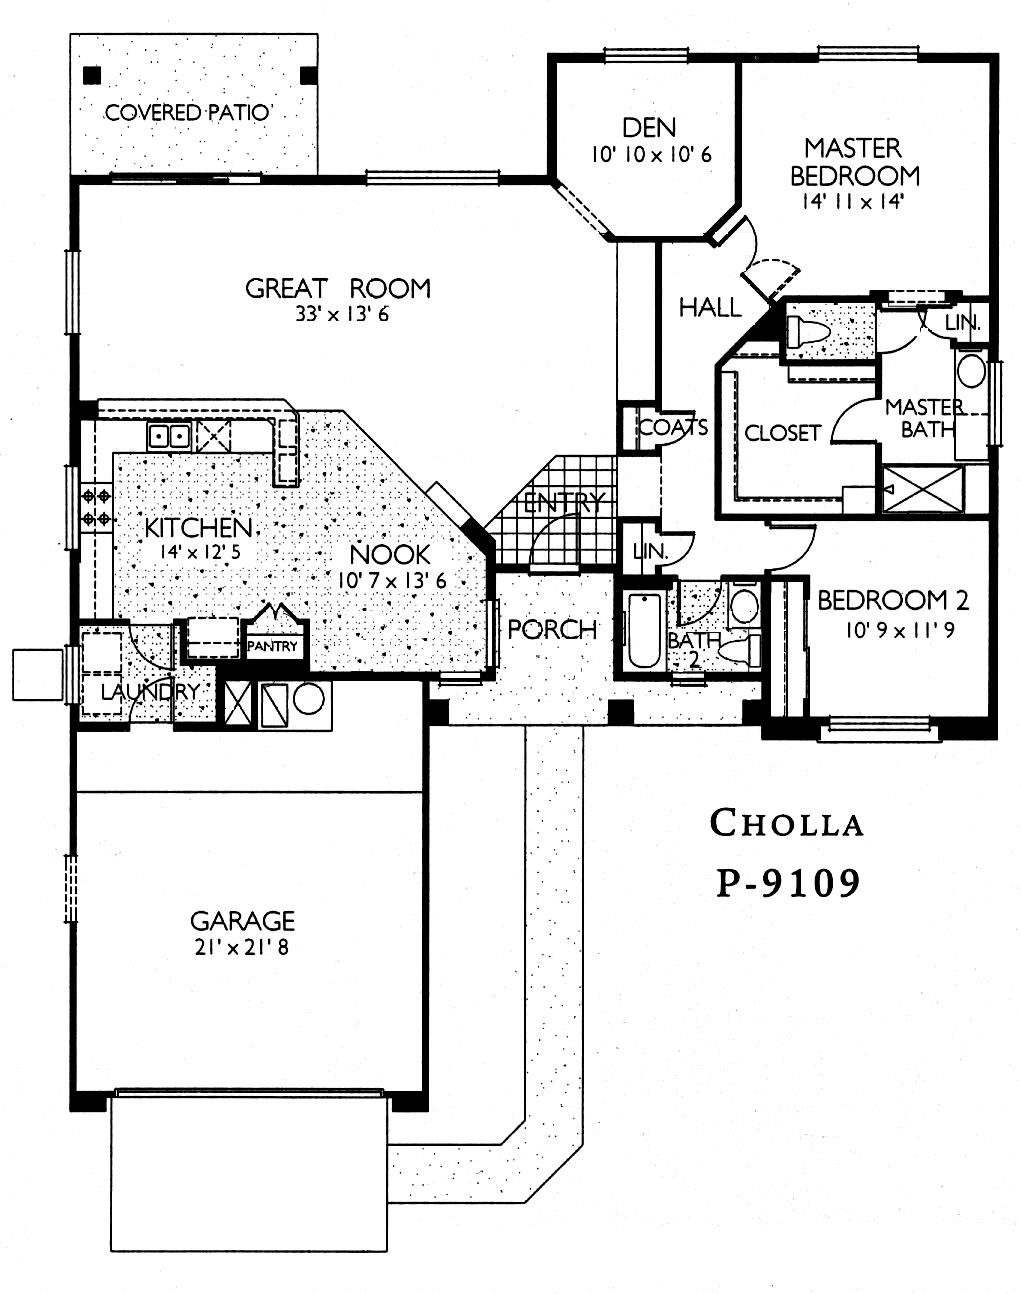 Sun City Grand Cholla floor plan, Del Webb Sun City Grand Floor Plan Model Home House Plans Floorplans Models in Surprise Phoenix Arizona AZ Ken Meade Realty Kathy Anderson